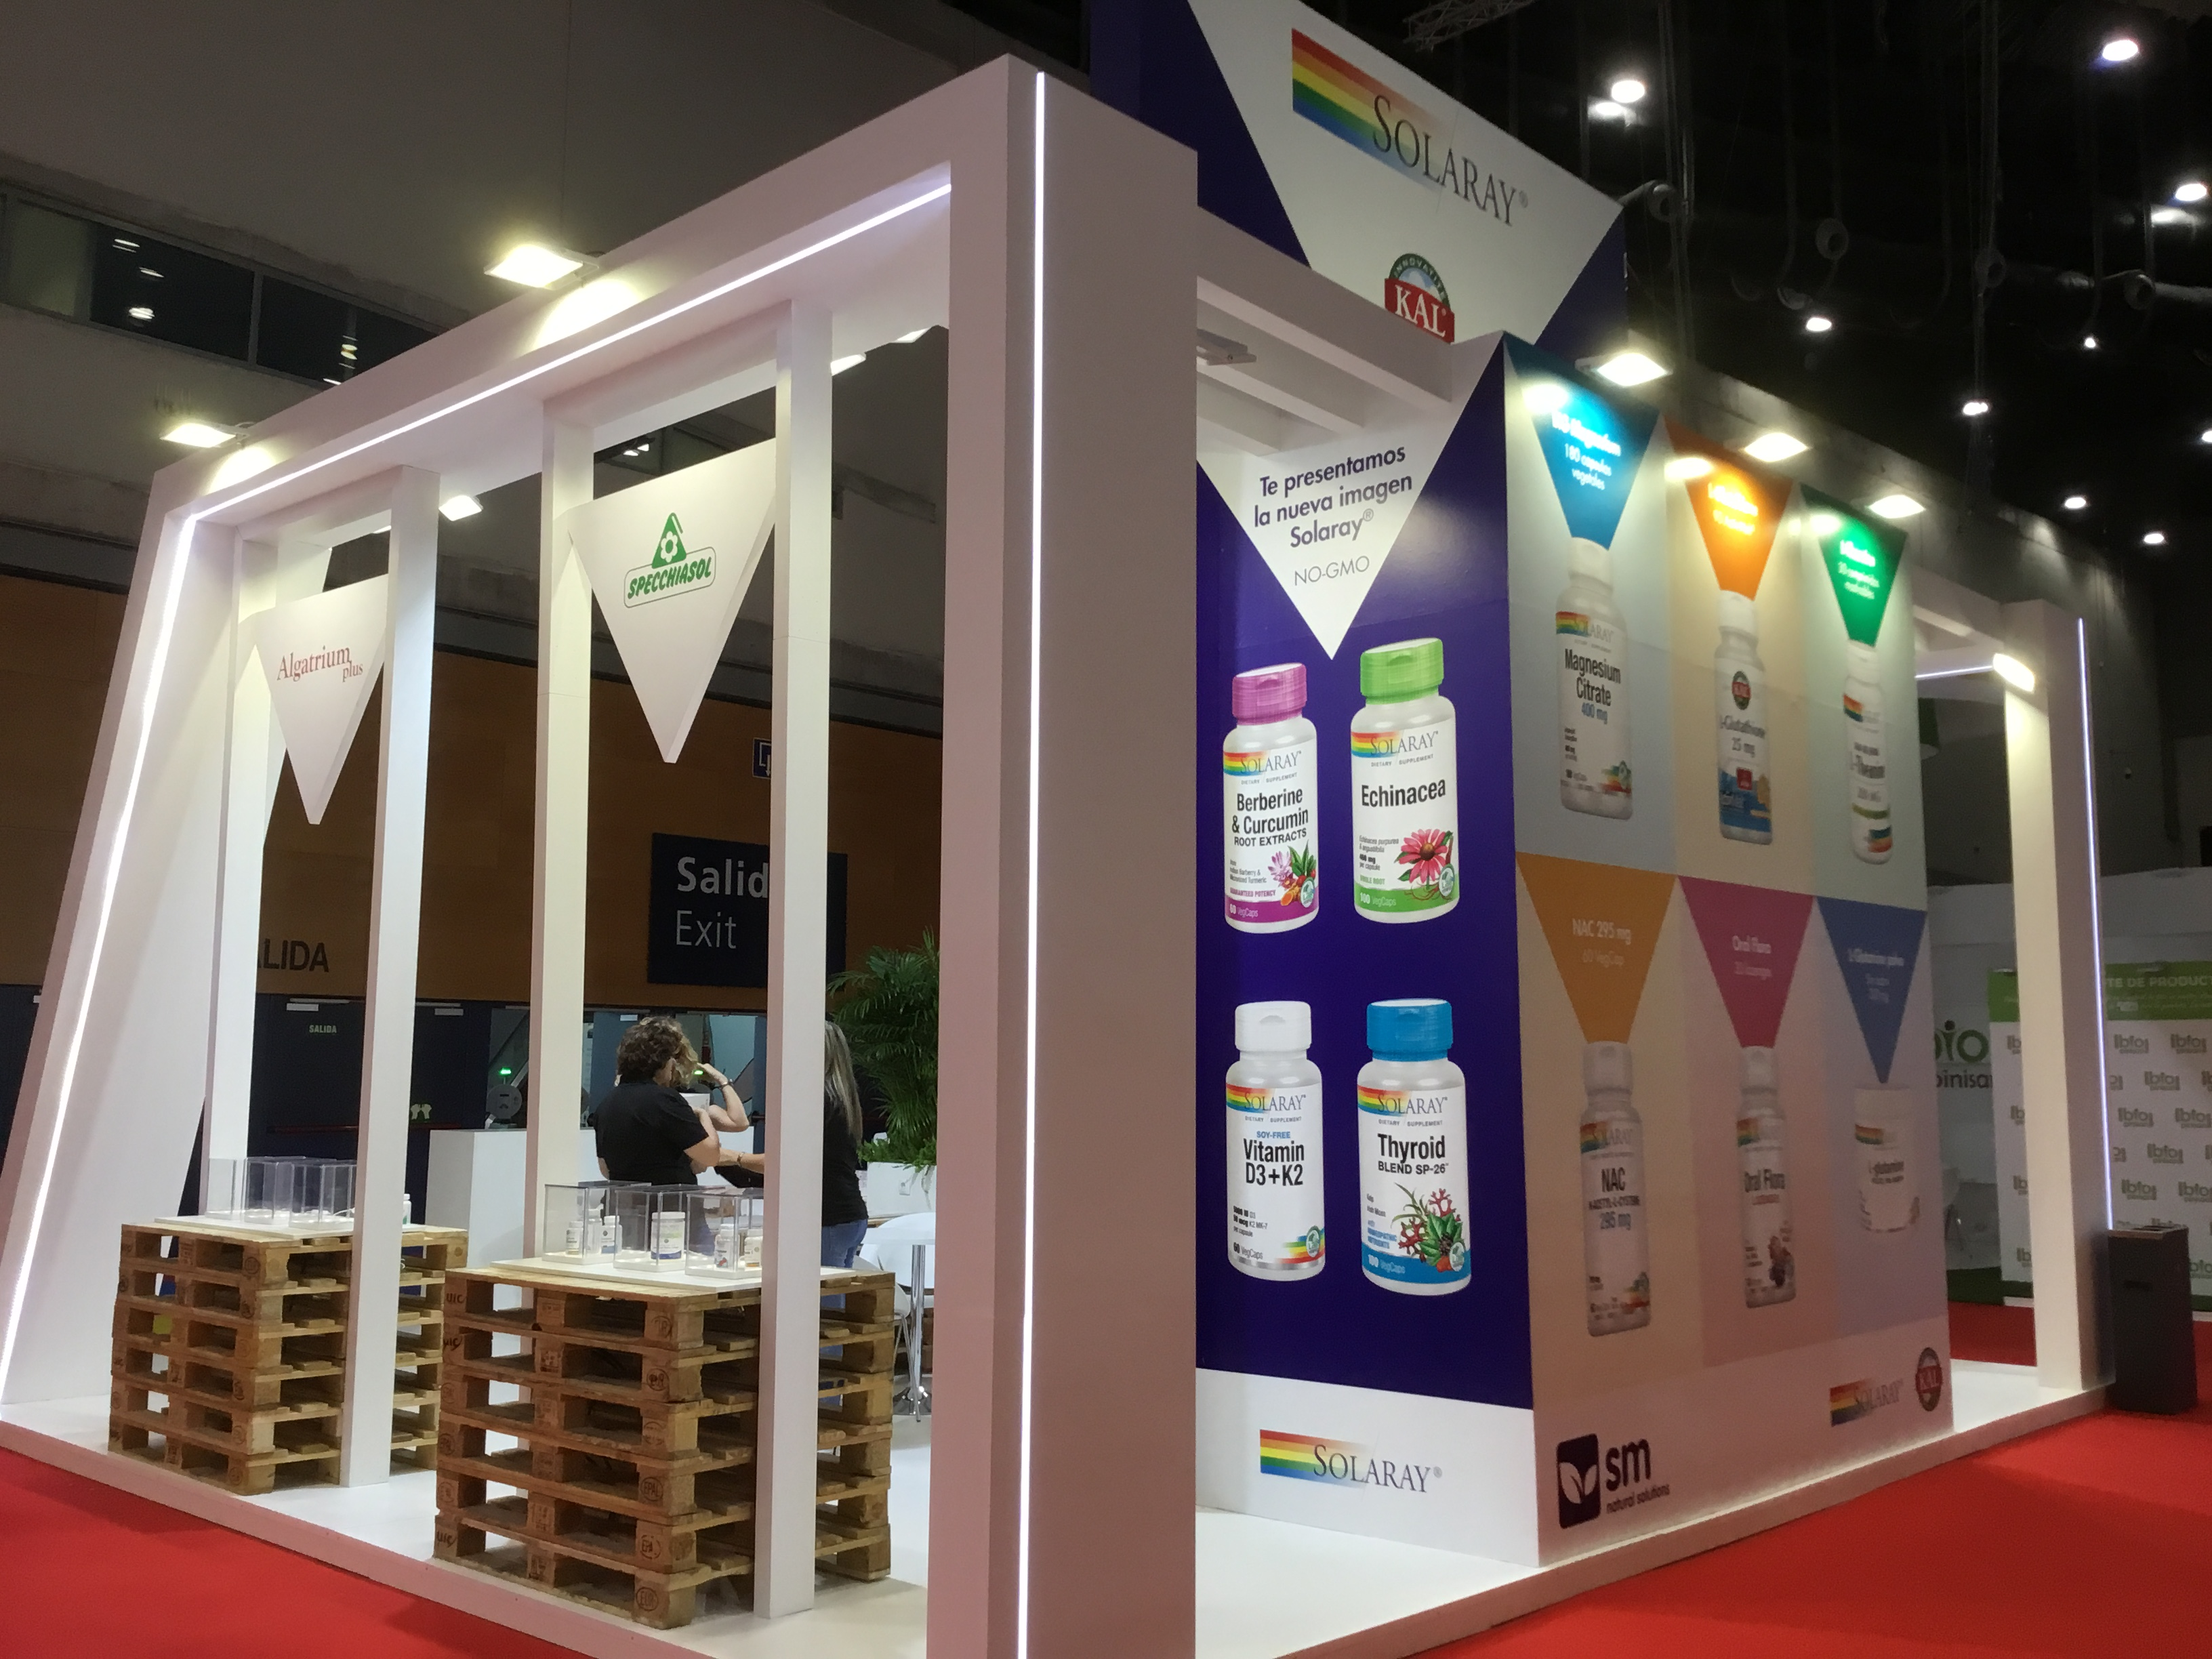 stand-sm-important-expo-ecosalud-madrid-2018-03